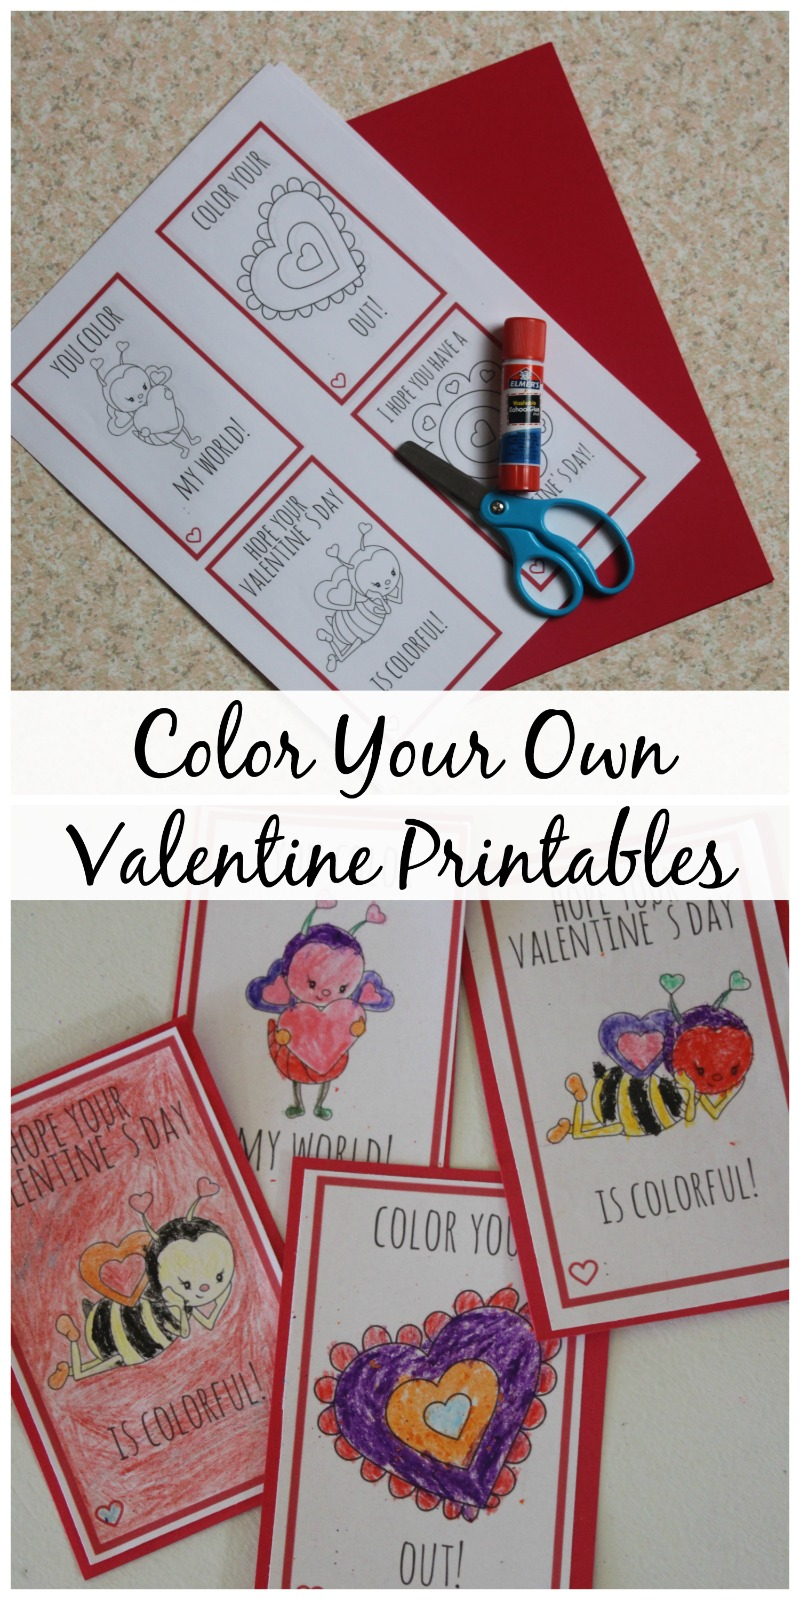 Color Your Own Valentine Printables--allow your kids to show off their creative side with these custom Valentine Printables